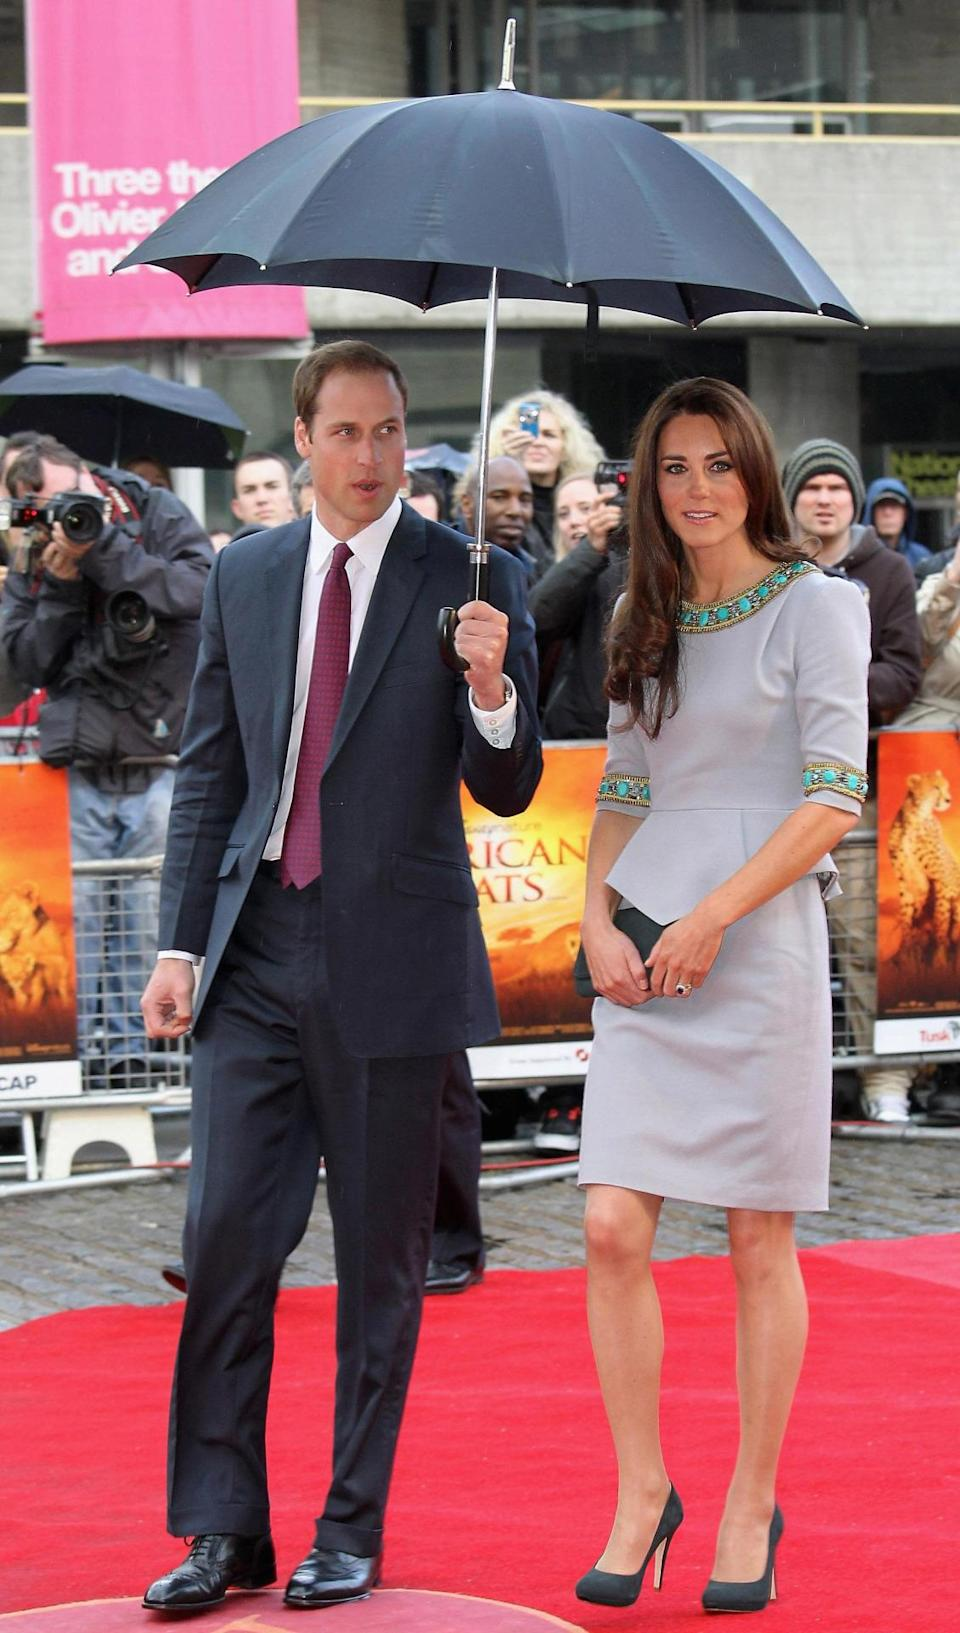 <p>The Duchess attended the UK premiere of <i>African Cats</i> in a beaded dress by Matthew Williamson. She paired the look with dark grey shoes and a matching clutch - both by Emmy London.</p><p><i>[Photo: PA]</i></p>